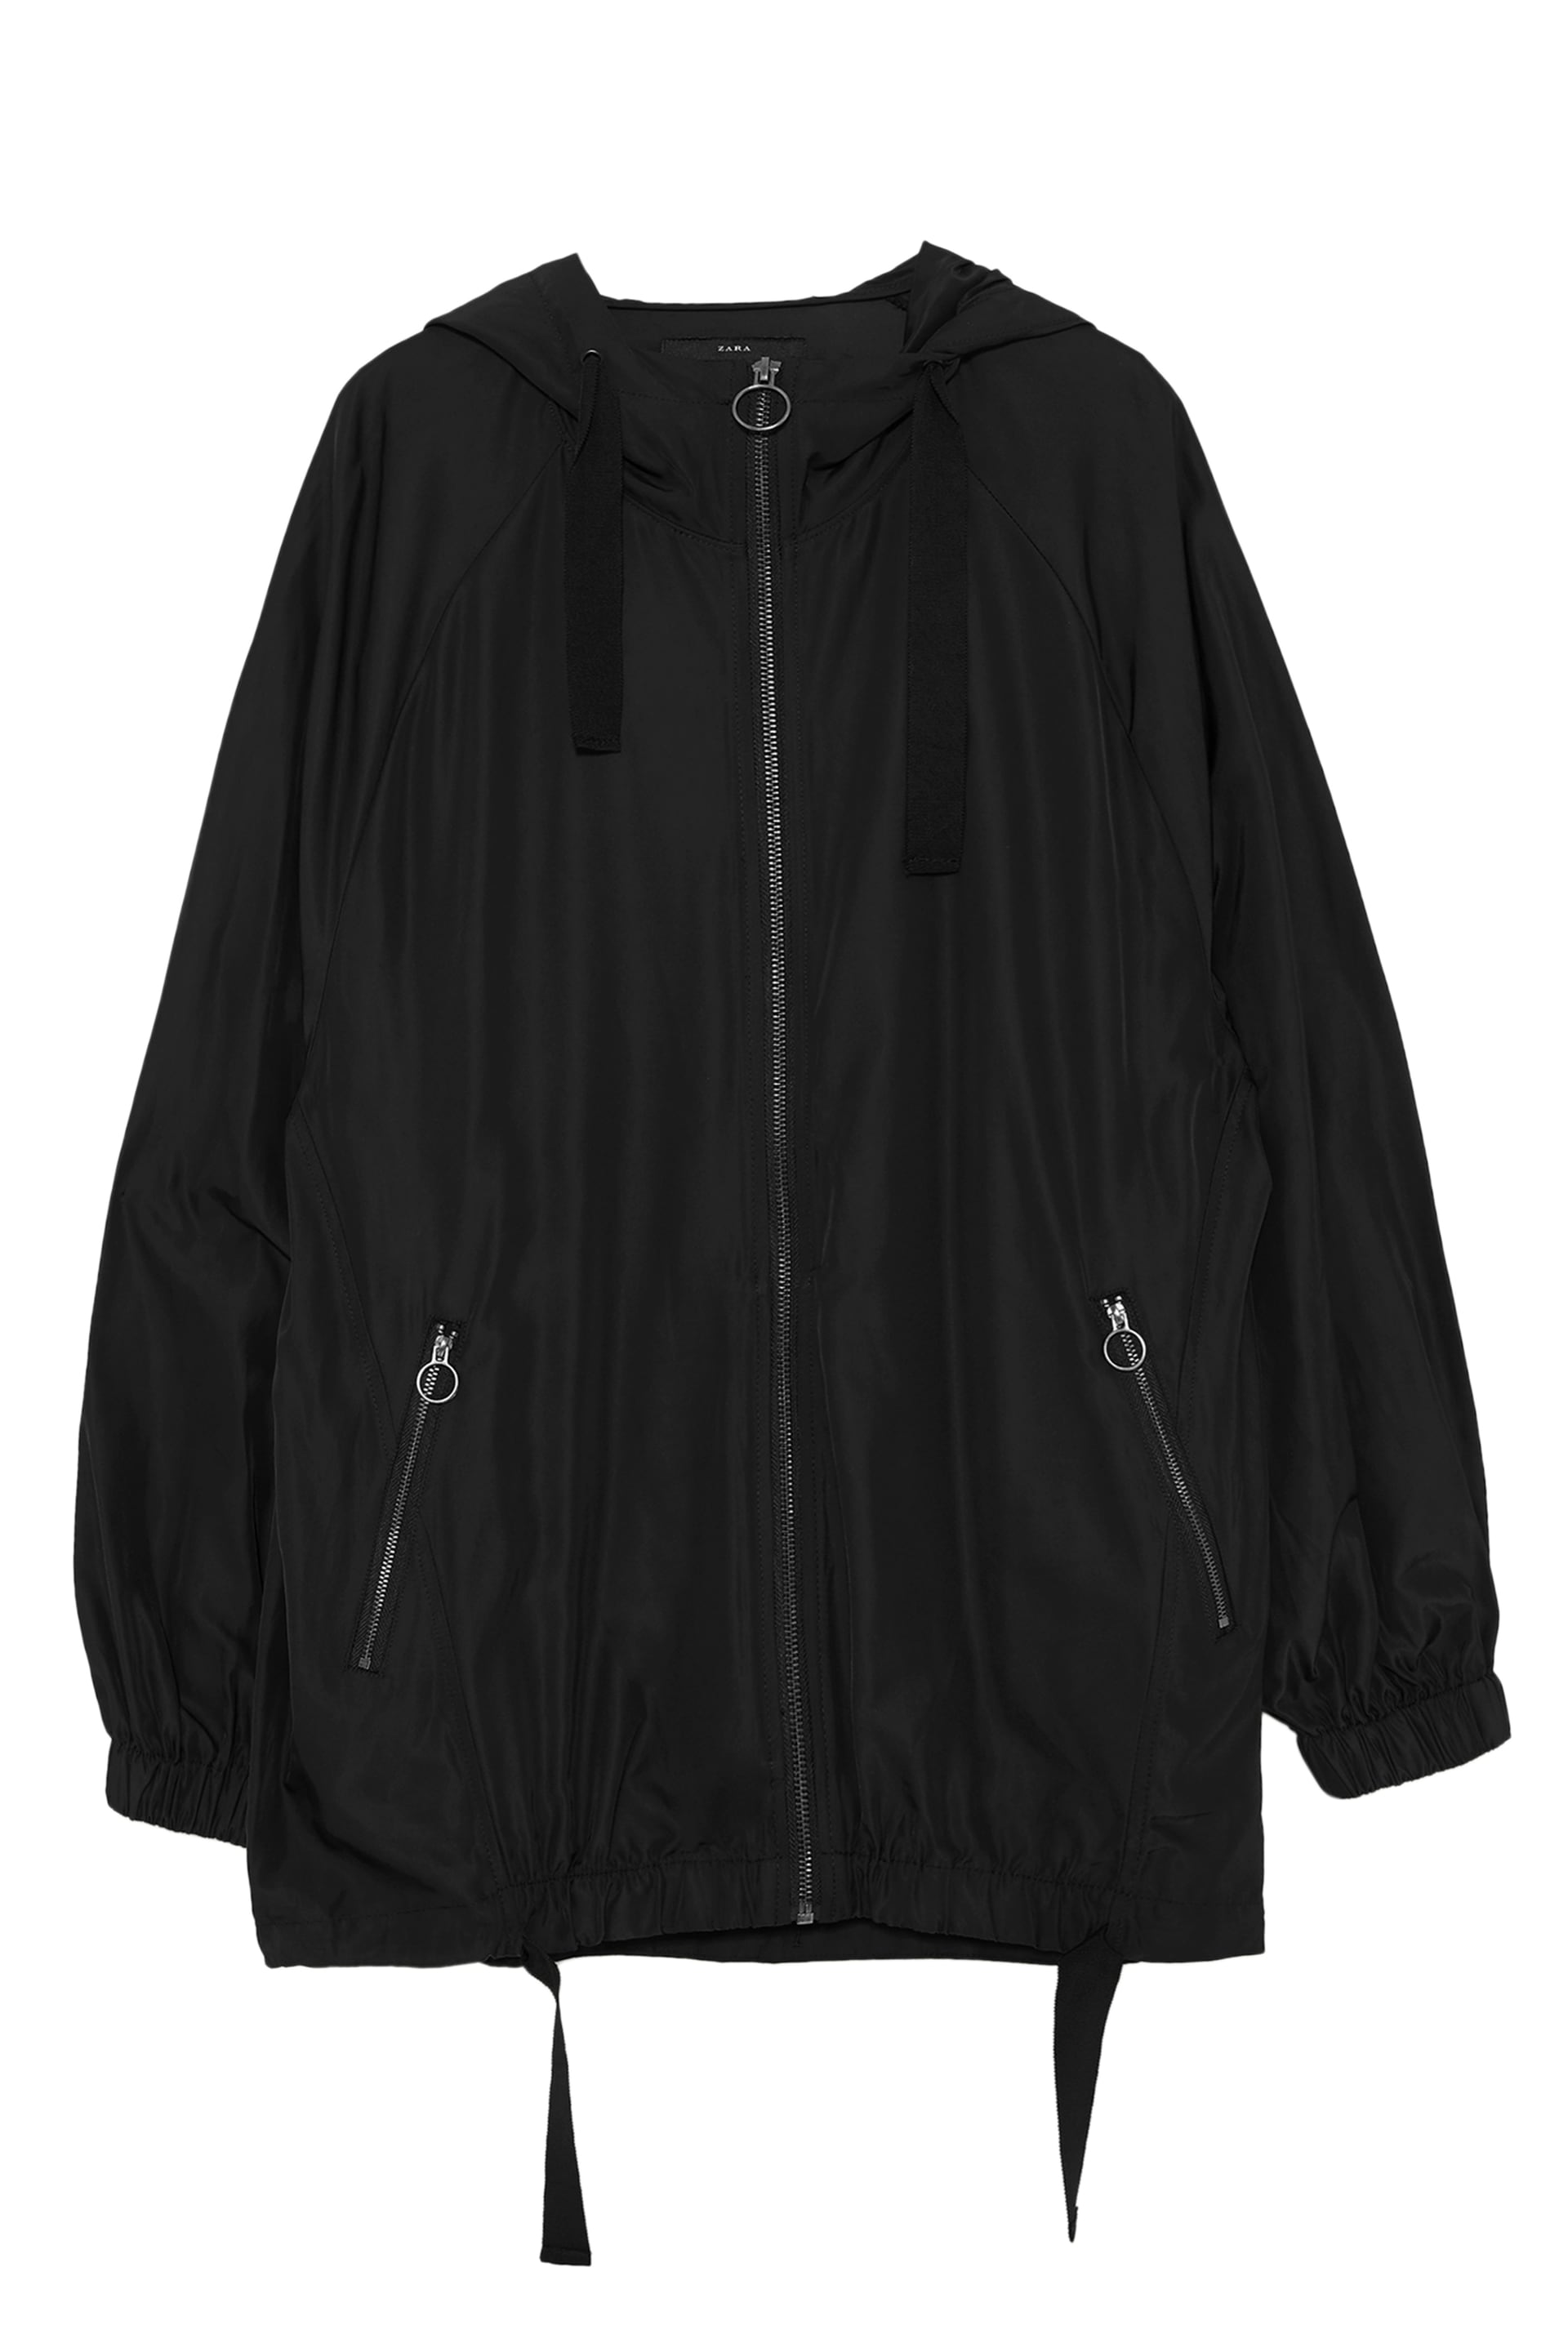 46d34be1 PACKABLE RAINCOAT - BAG-View All-COATS-WOMAN | ZARA Malaysia